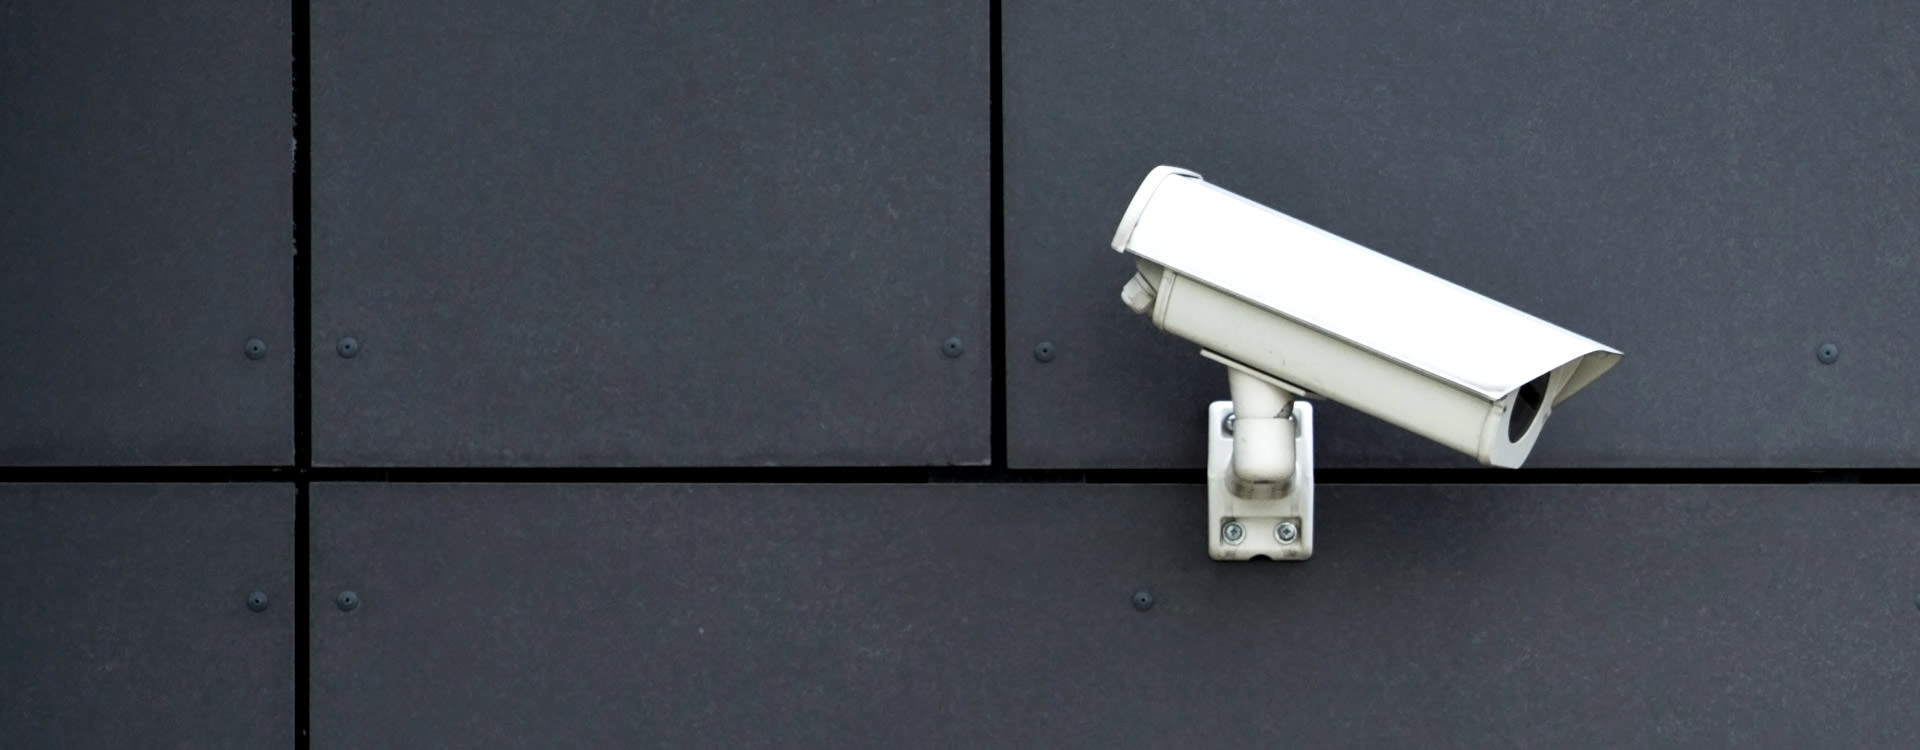 Us Security Systems